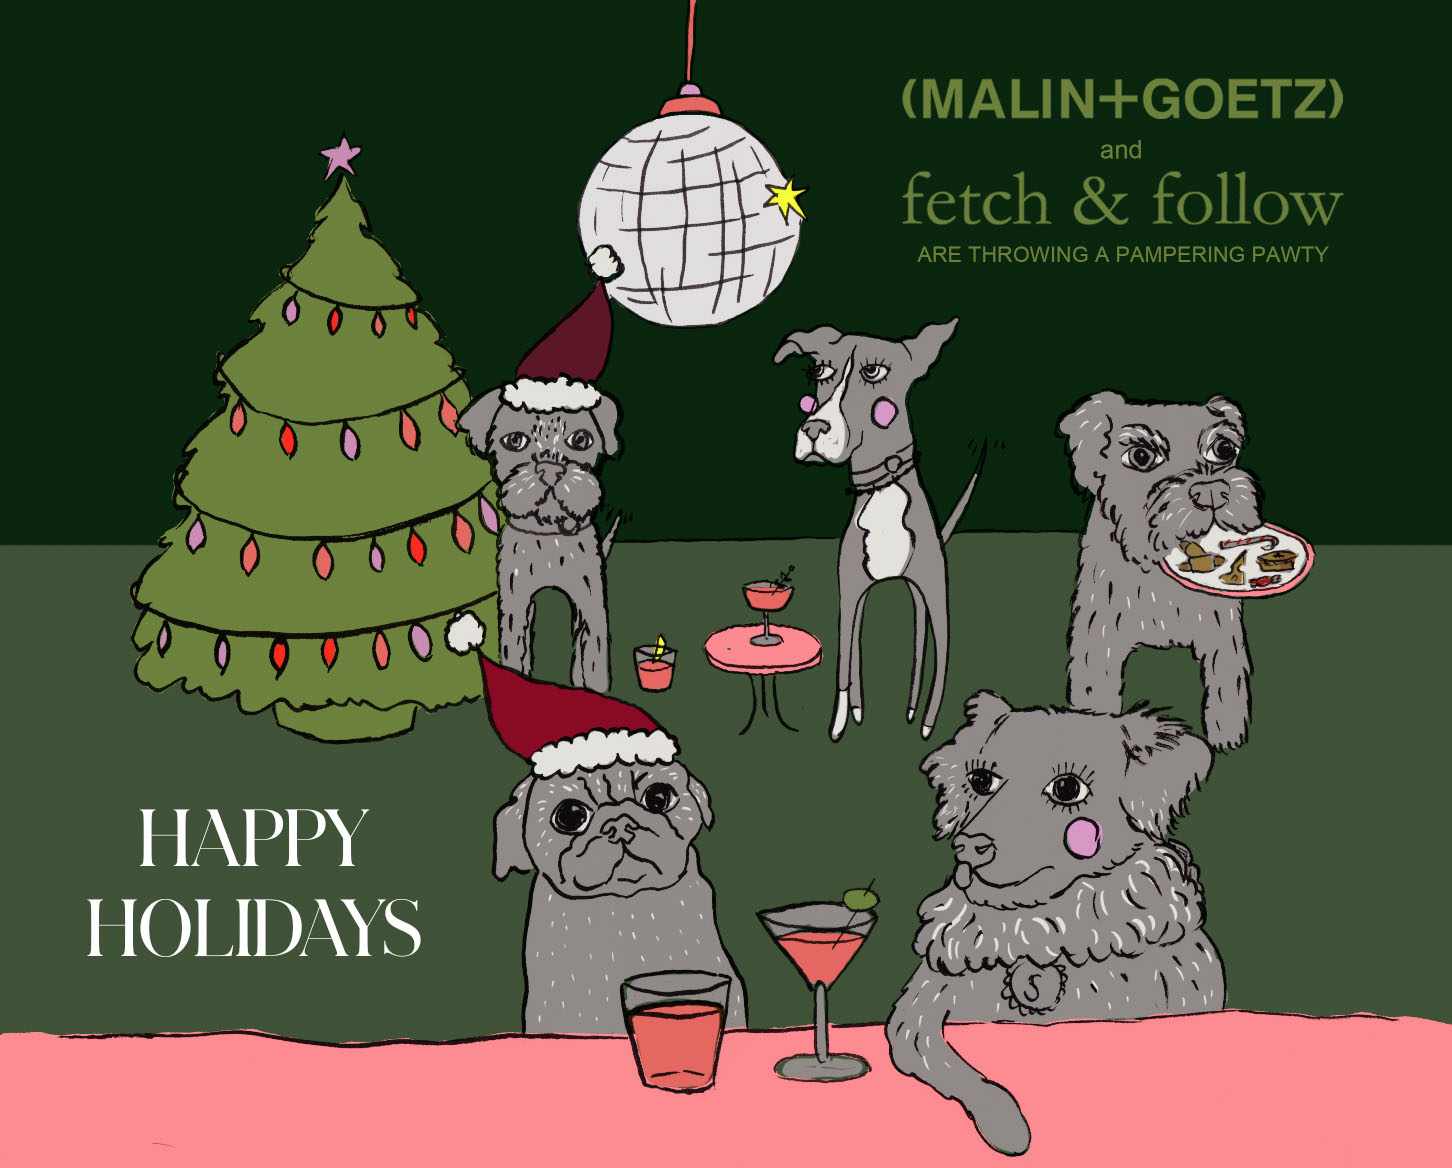 Poster of Fetch and Follow festive Pamper Party